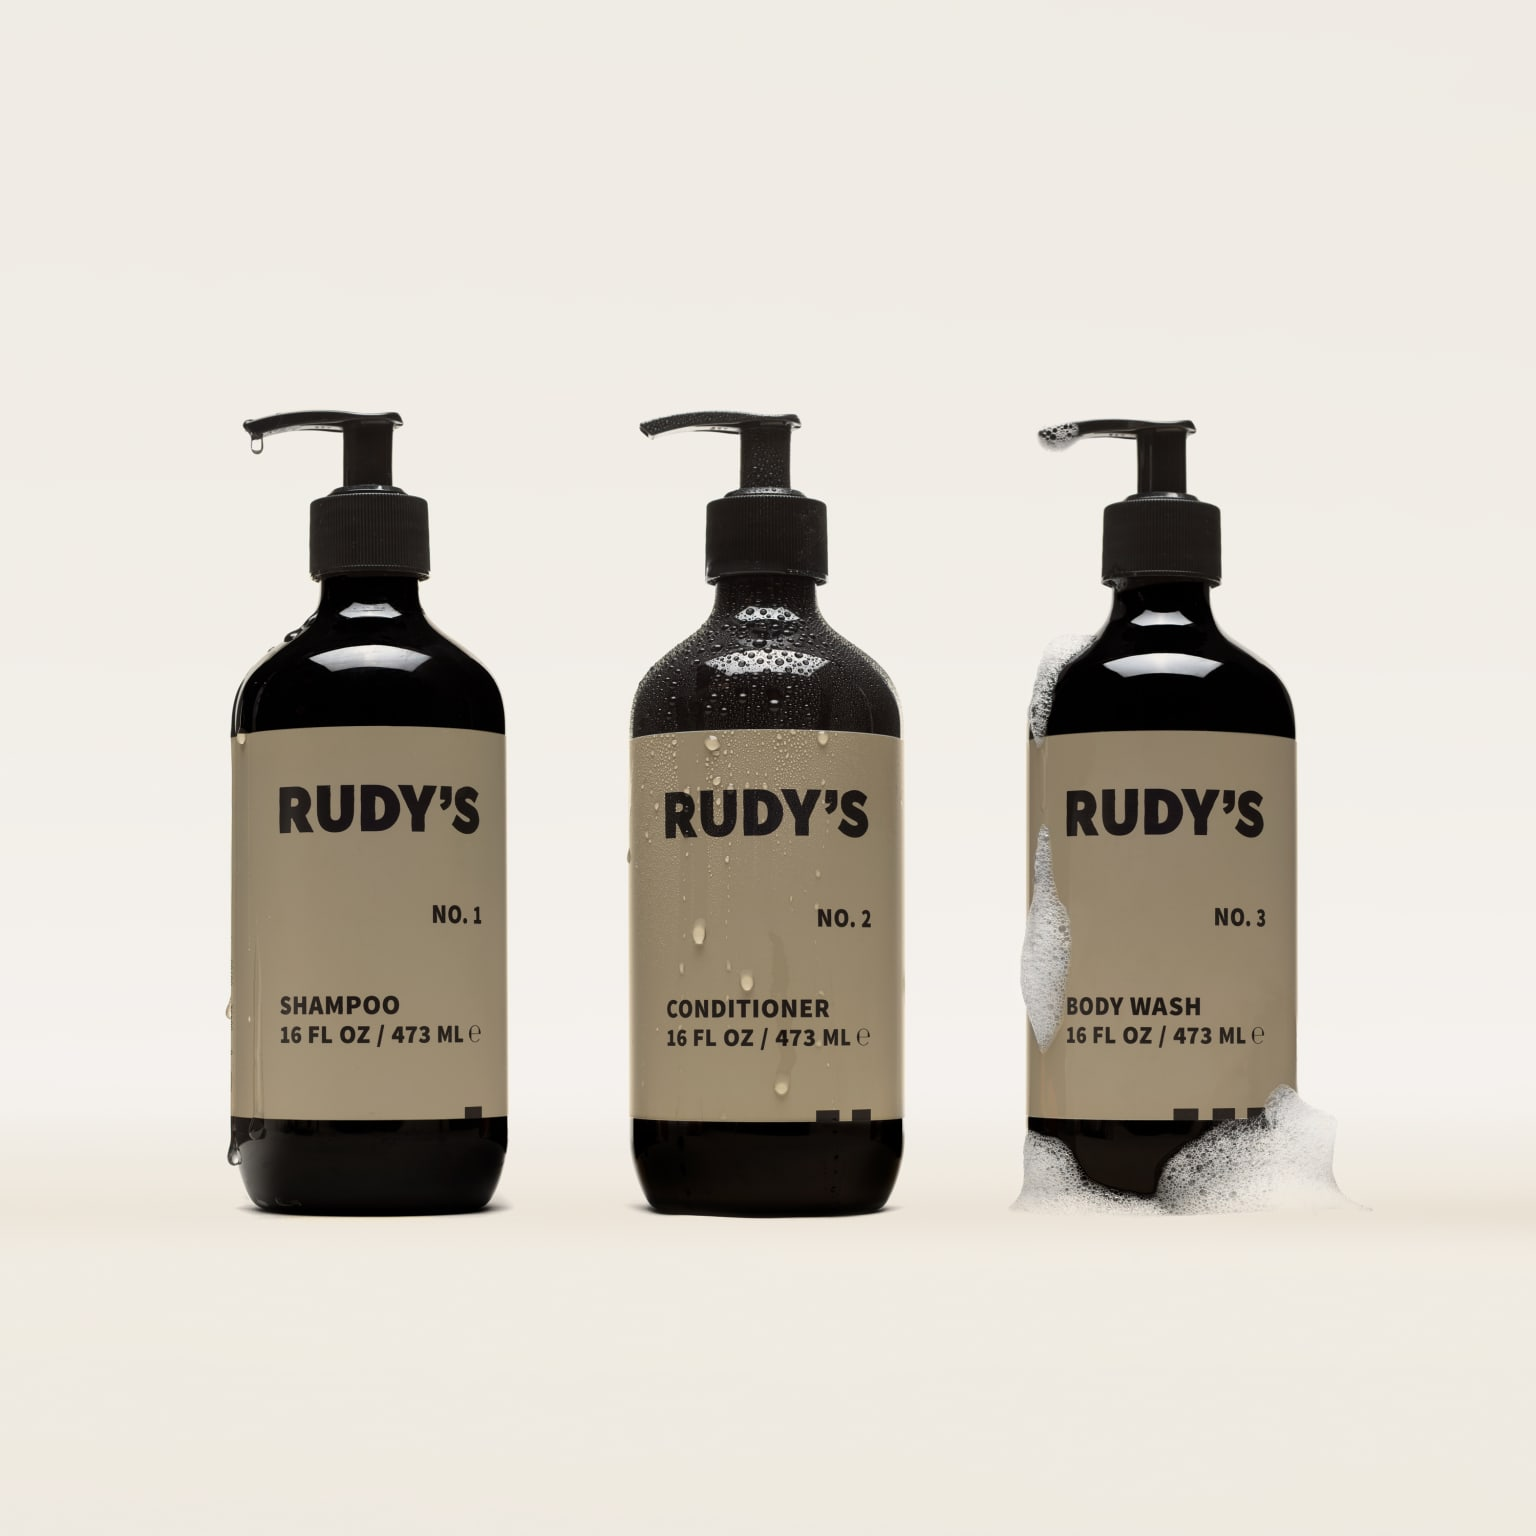 Rudy's — Shampoo, Conditioner, and Body Wash